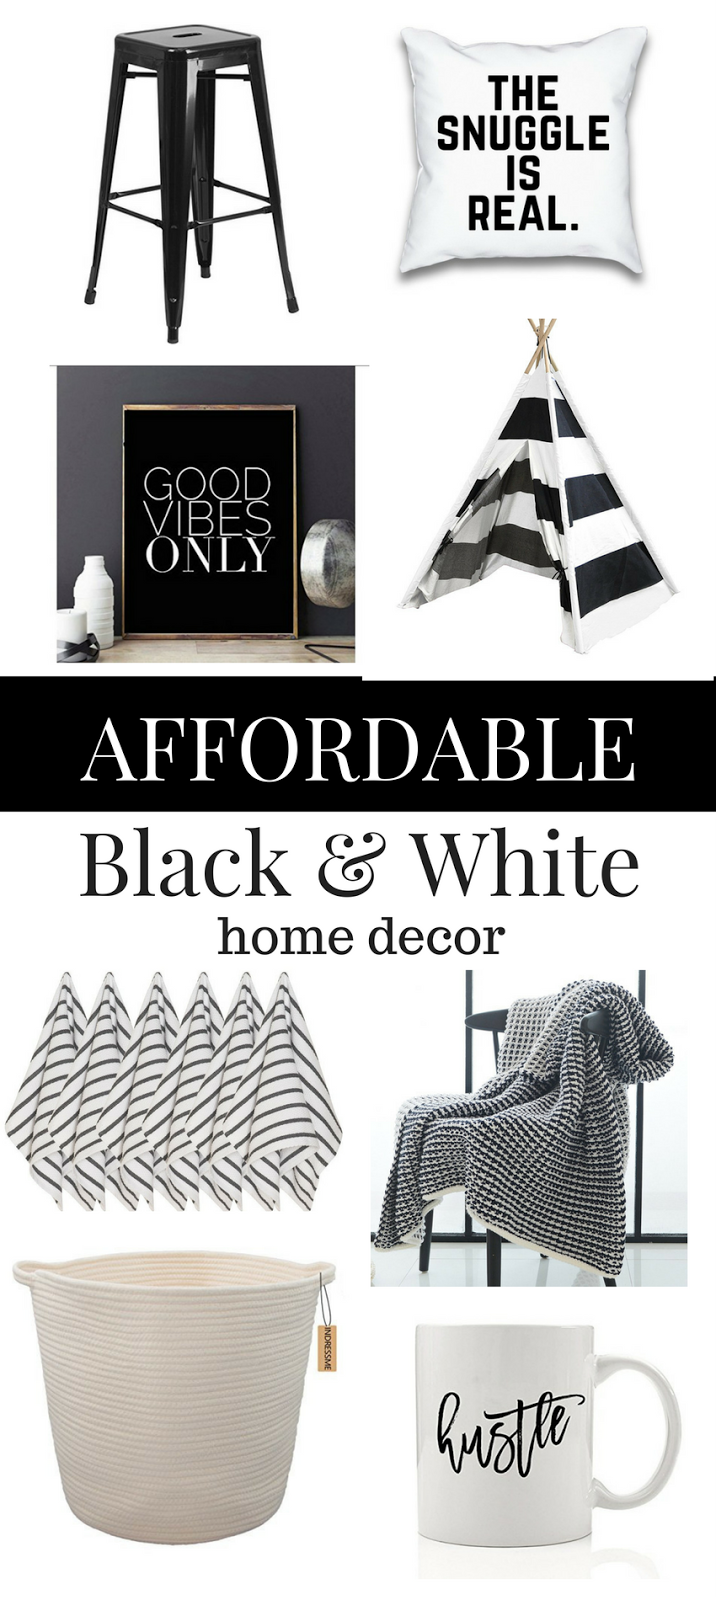 Black And White Home Decor Accessories.22 Black And White Home Decor Pieces You Ll Love